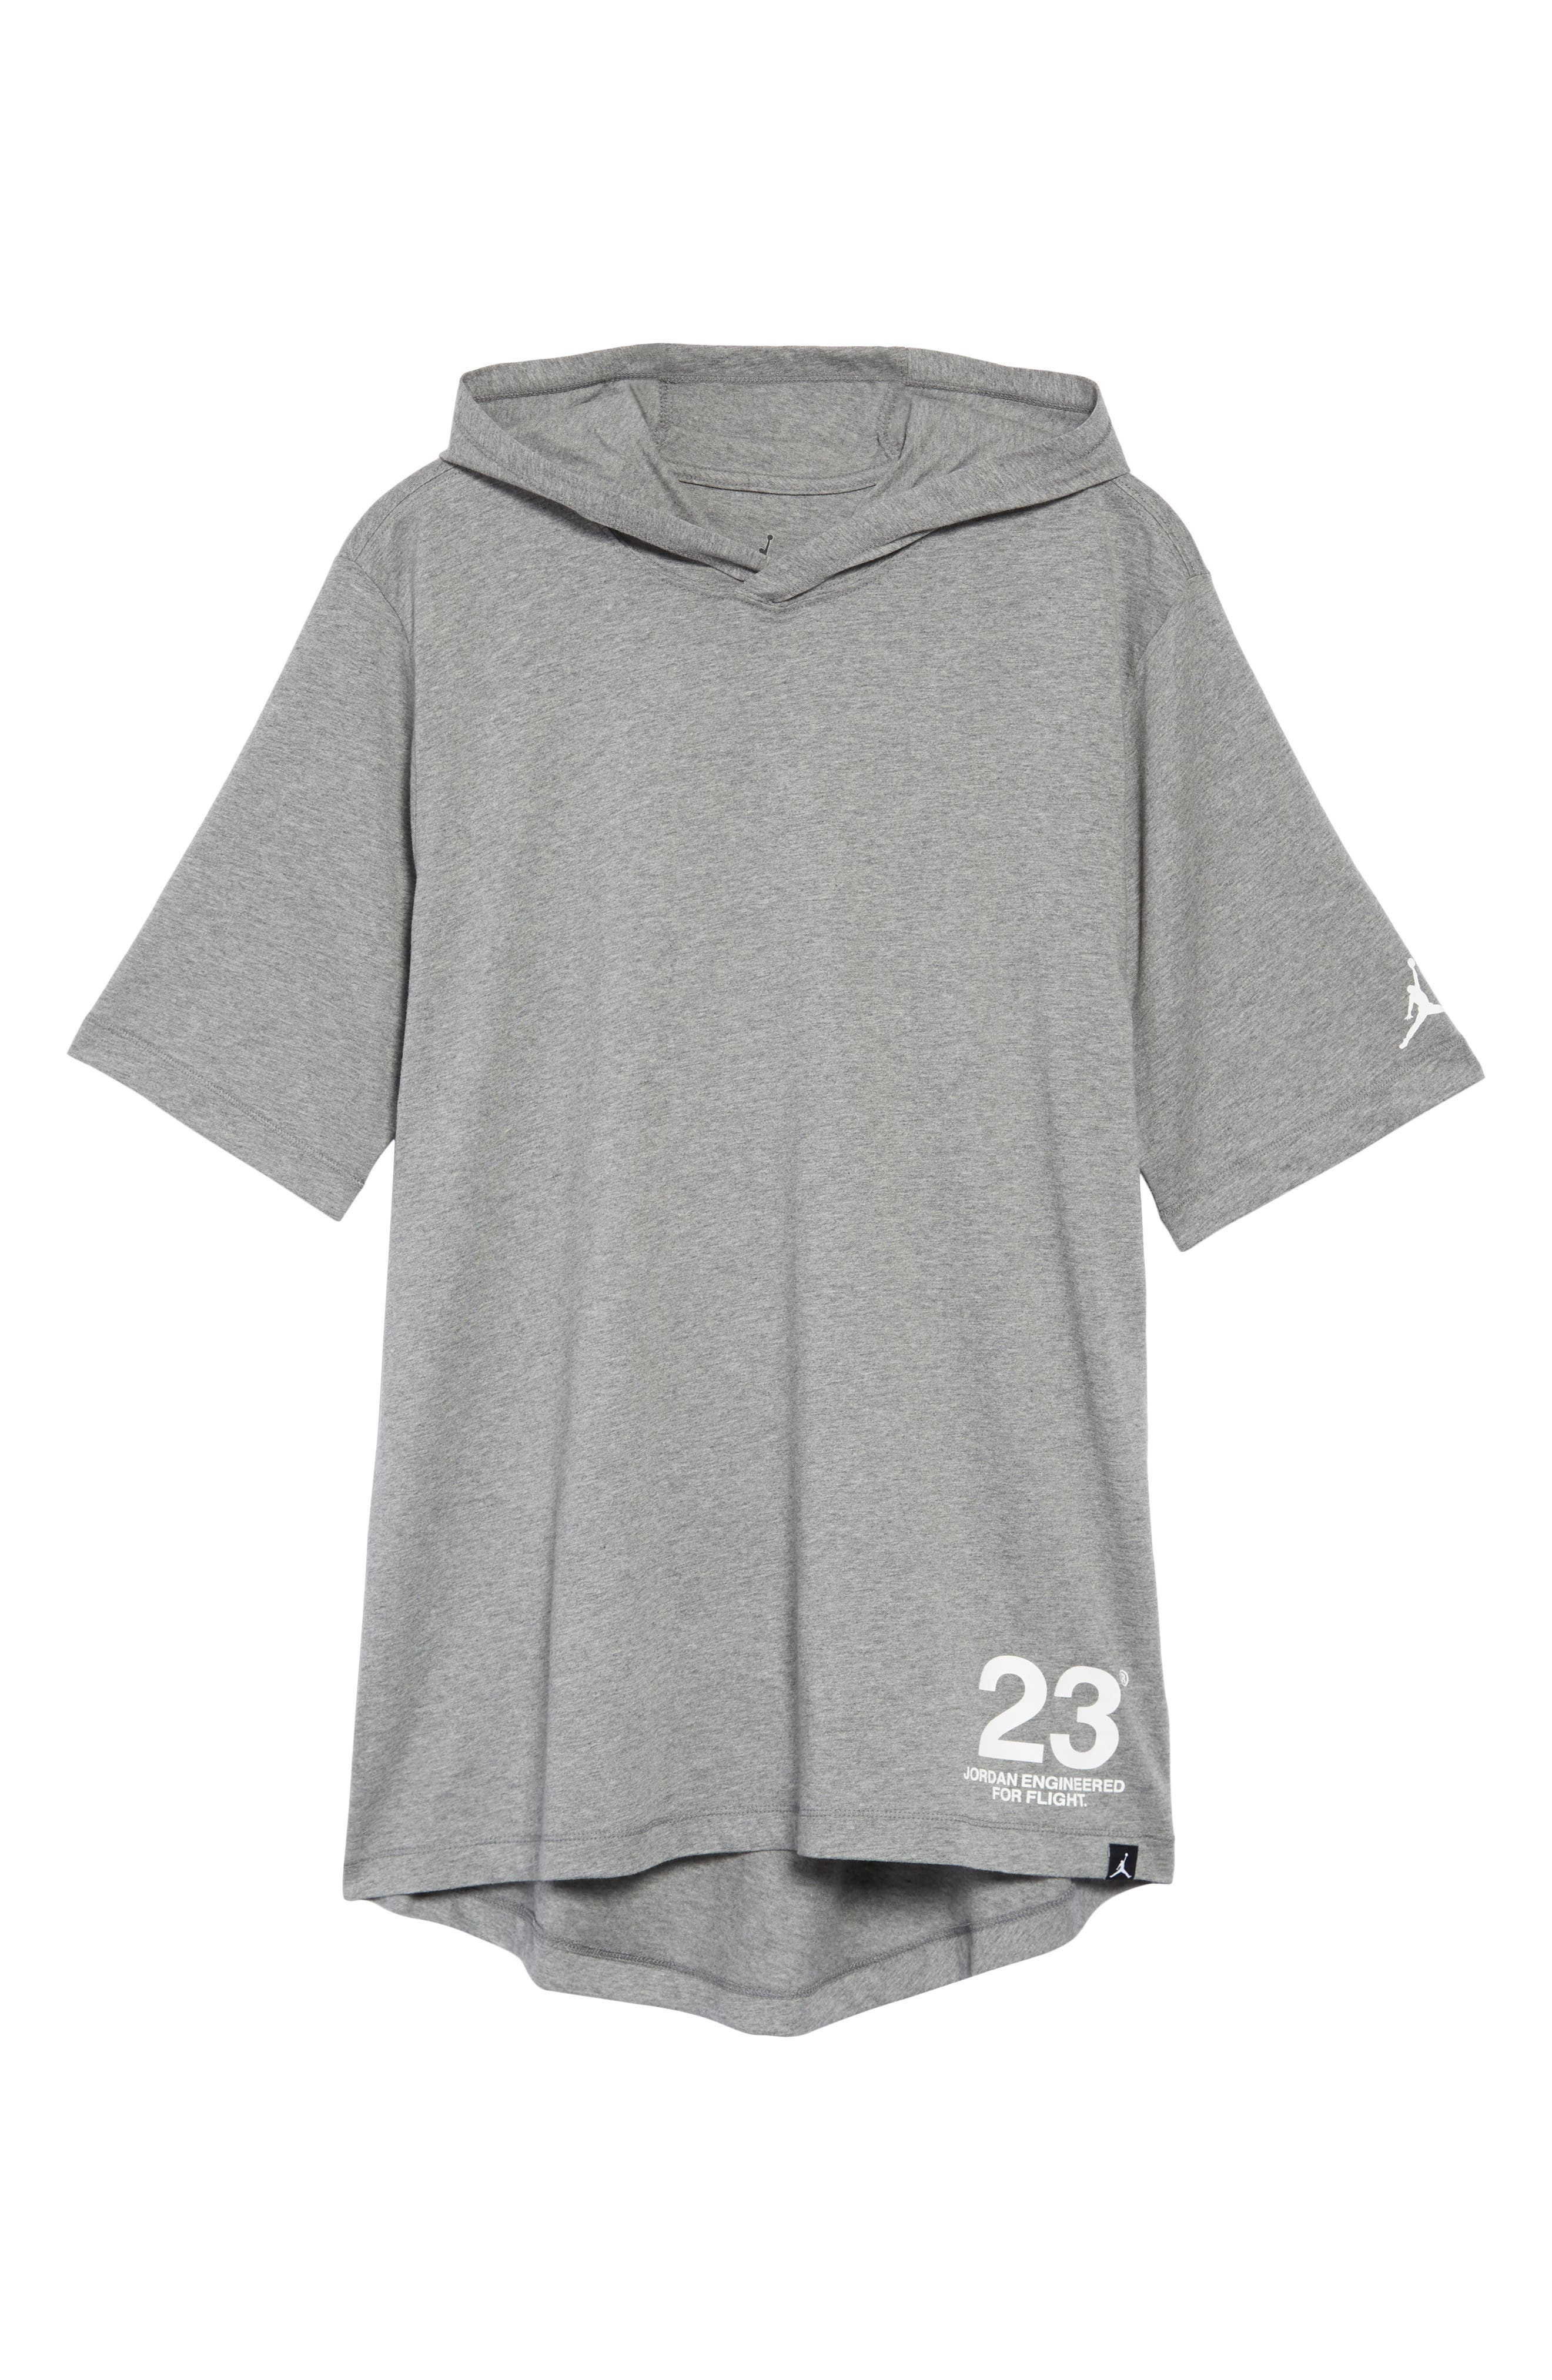 Sportswear 23 Hooded T-Shirt,                             Alternate thumbnail 6, color,                             CARBON HEATHER/ WHITE